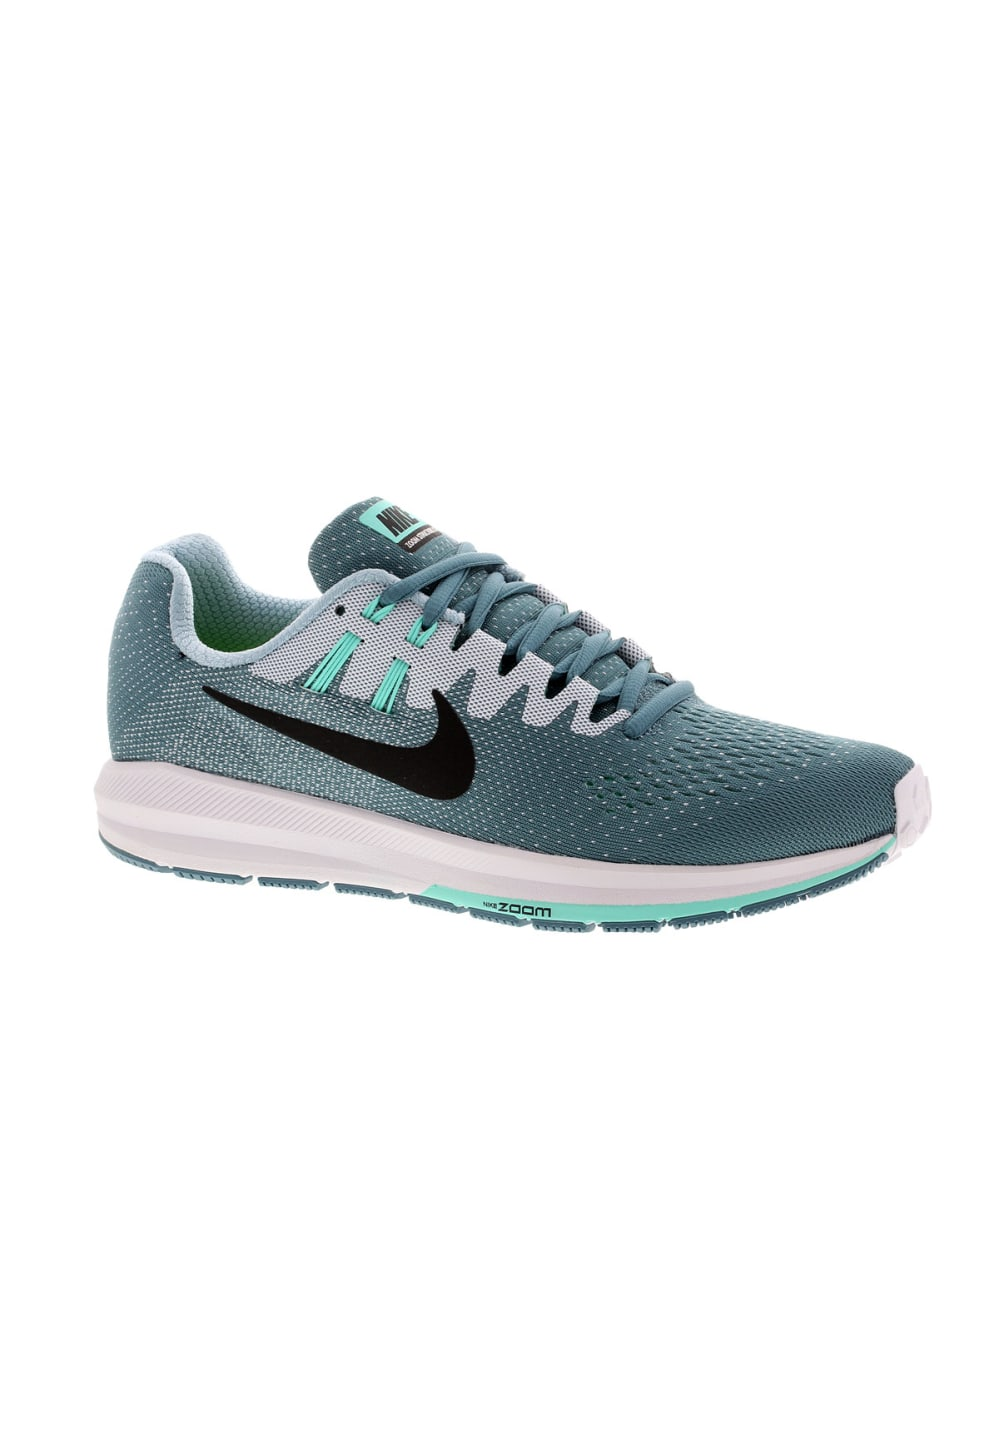 super popular 2e3fb eacf0 Nike Air Zoom Structure 20 - Running shoes for Women - Grey